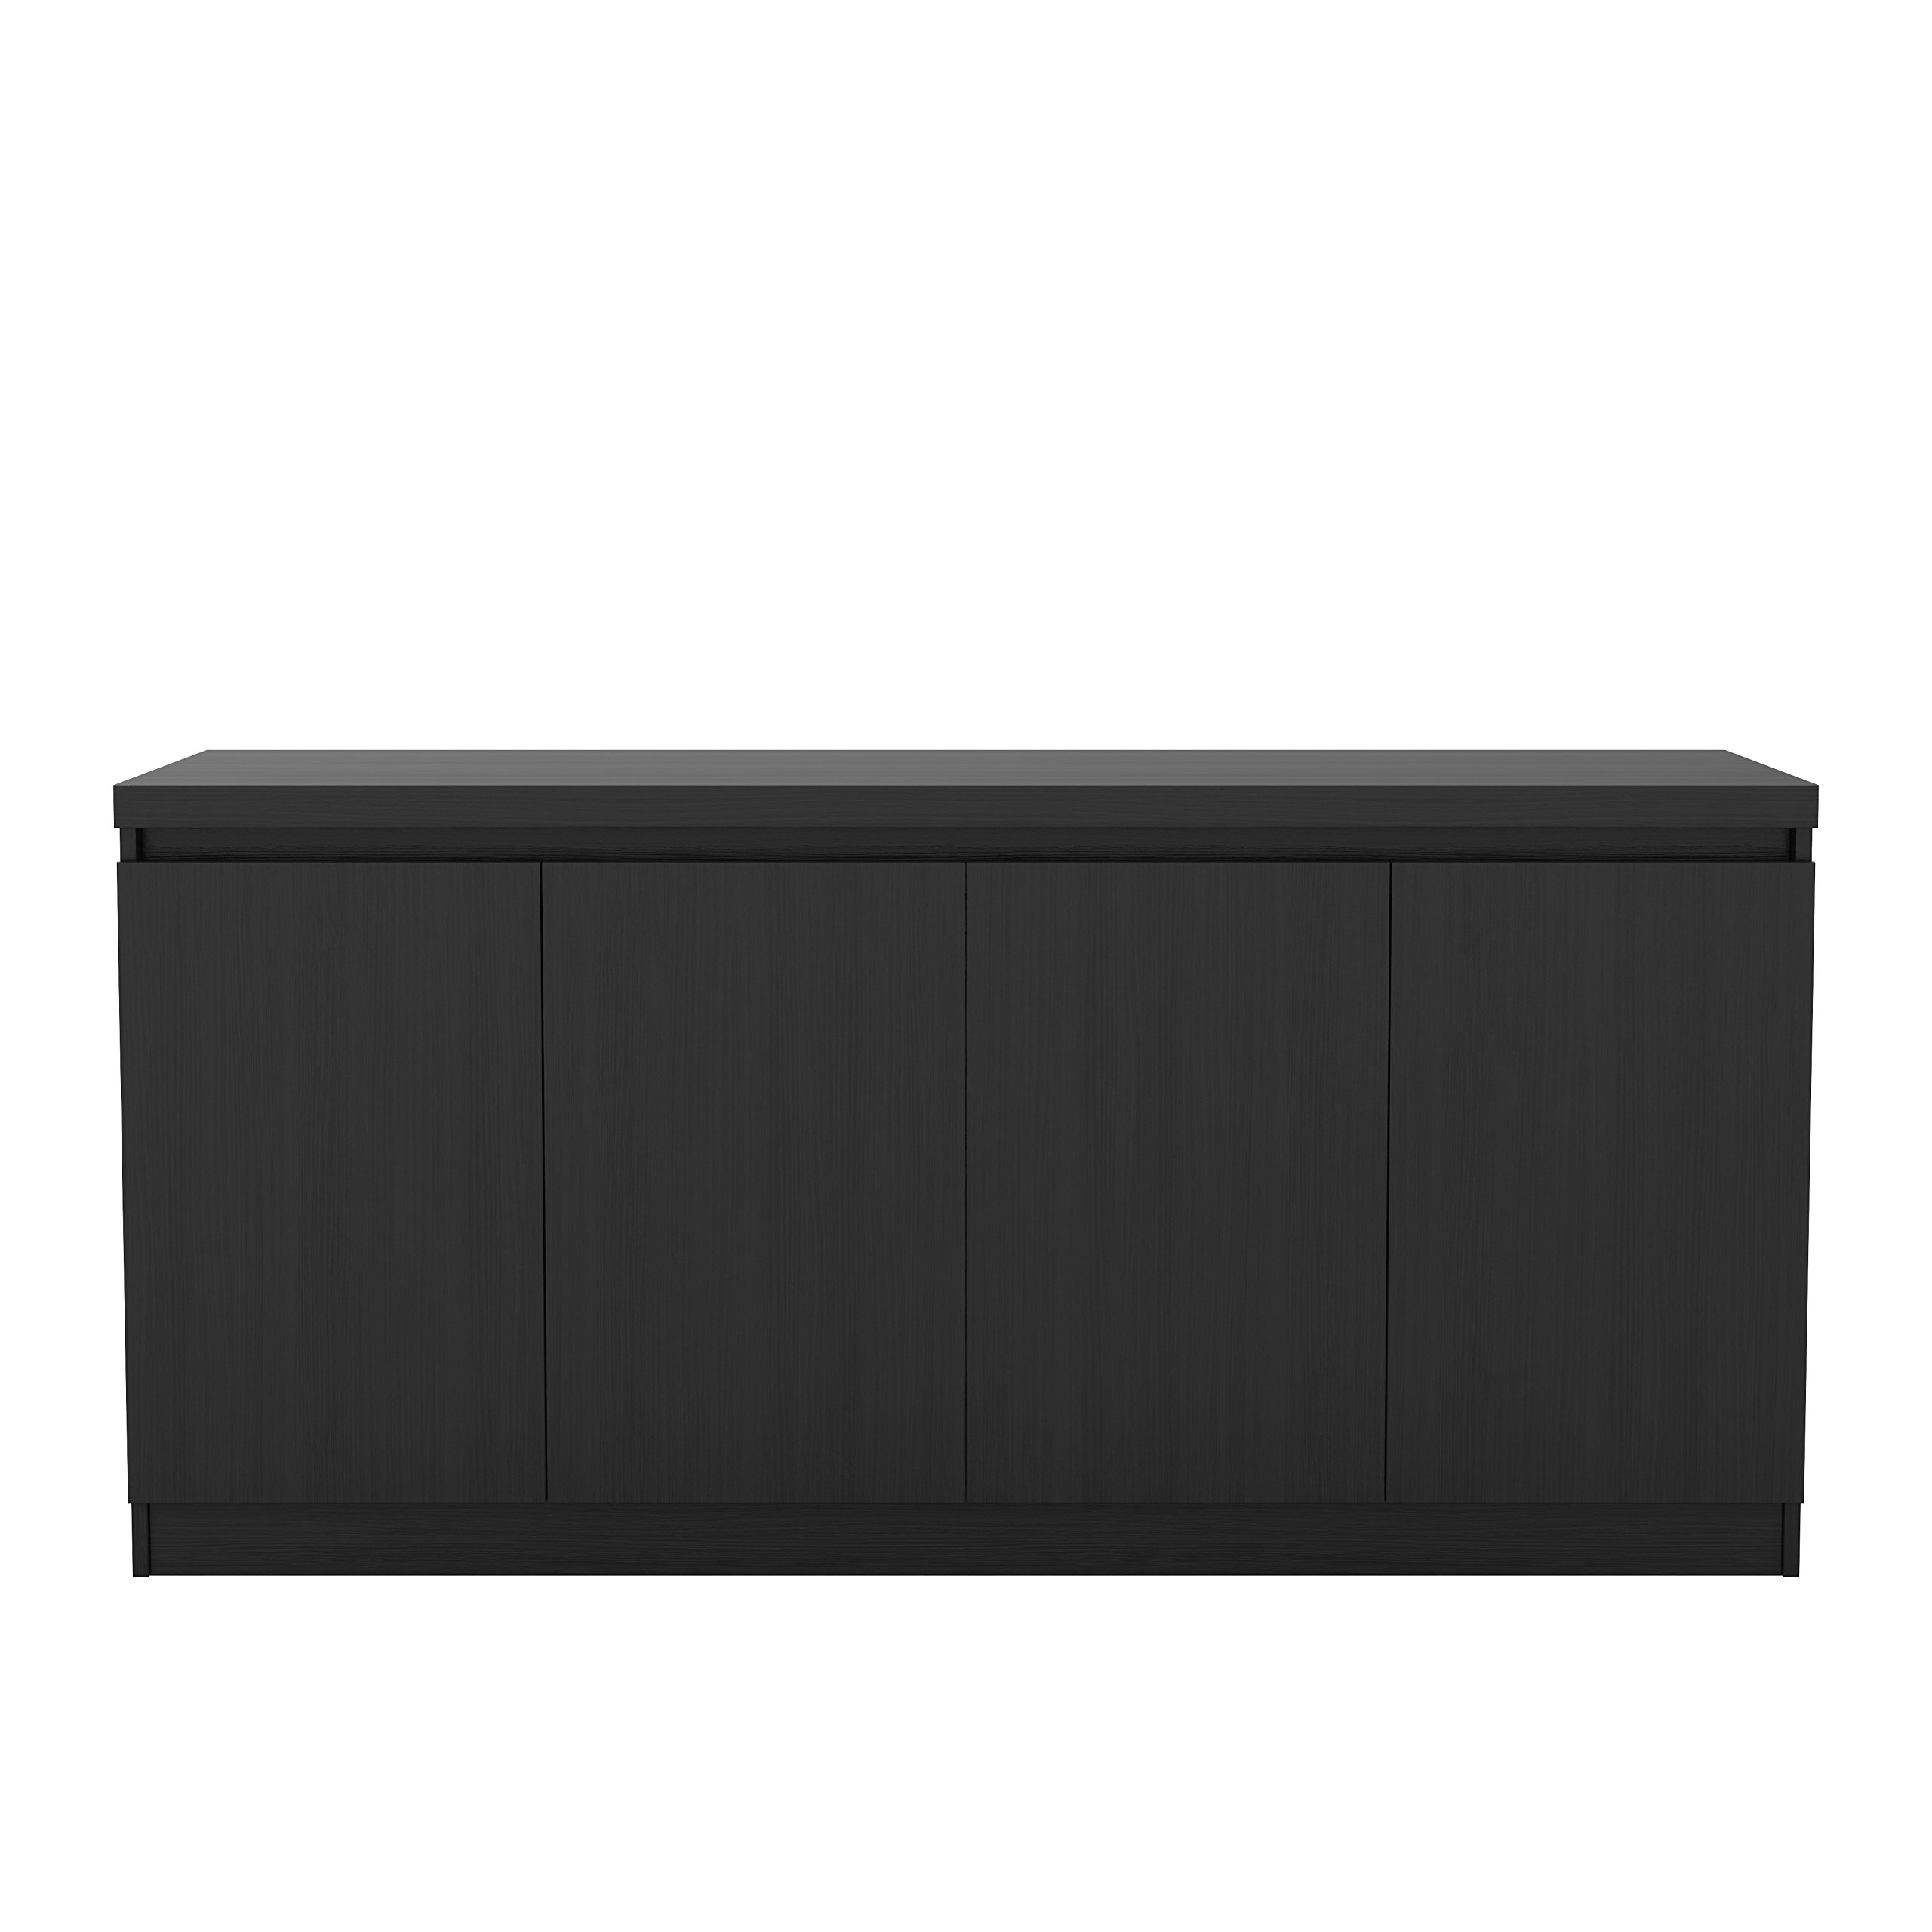 Manhattan Comfort Viennese Collection 6 Shelf Gloss Finished Long Buffet Cabinet / Dining Console with 4 Doors, Black Gloss by Manhattan Comfort